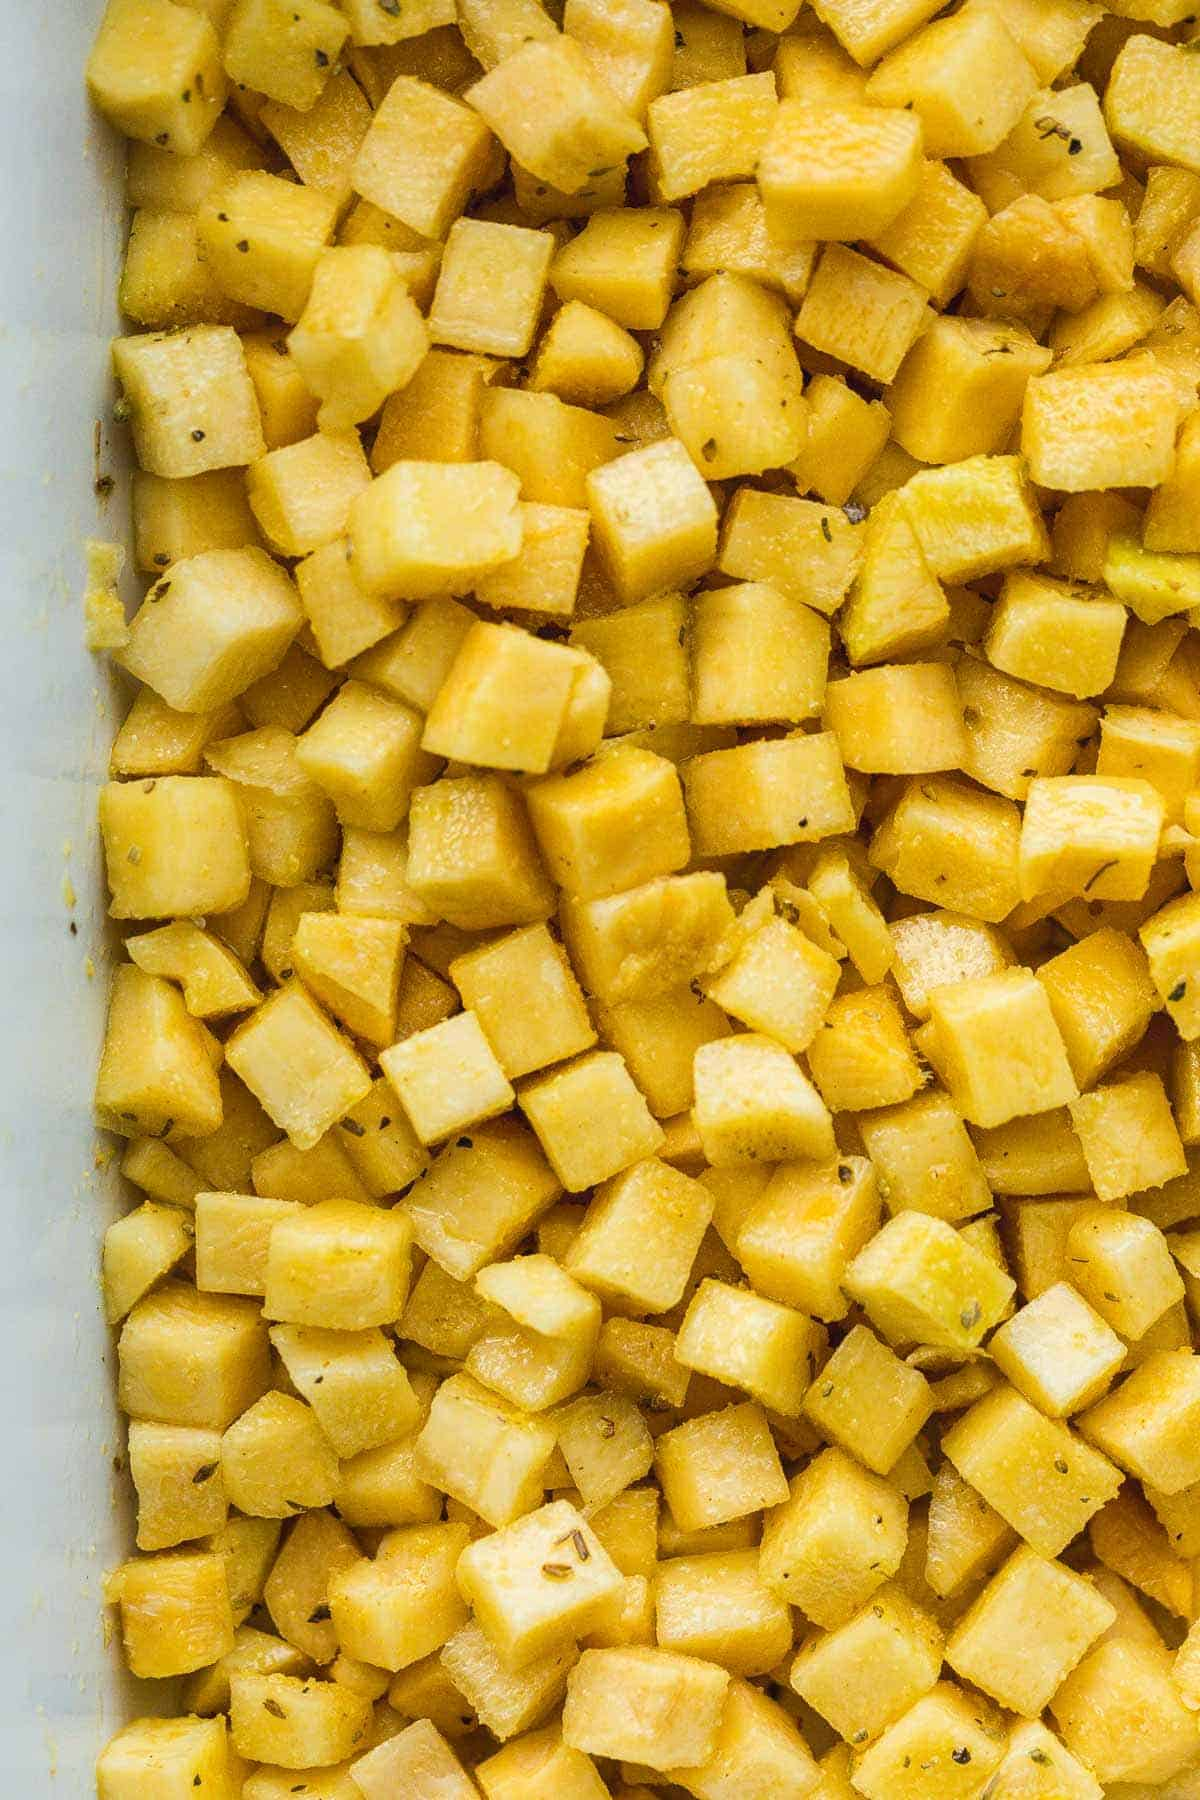 Cubed and seasoned swede before roasting